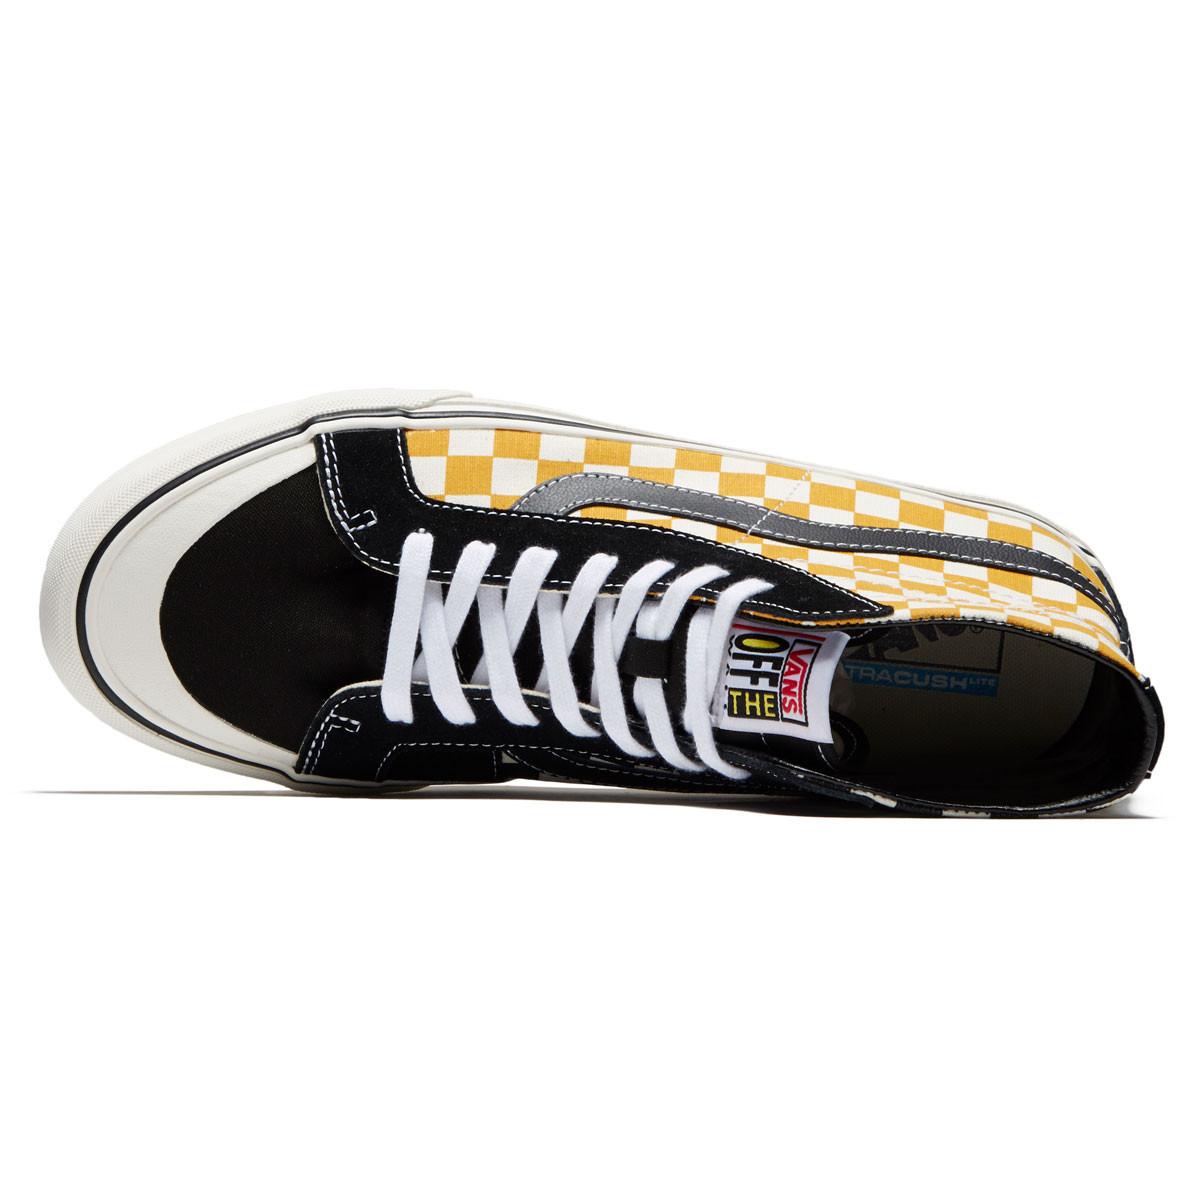 c72fbe7cdb Vans Sk8-Hi 138 Decon SF Shoes - Black Sunflower - 11.0